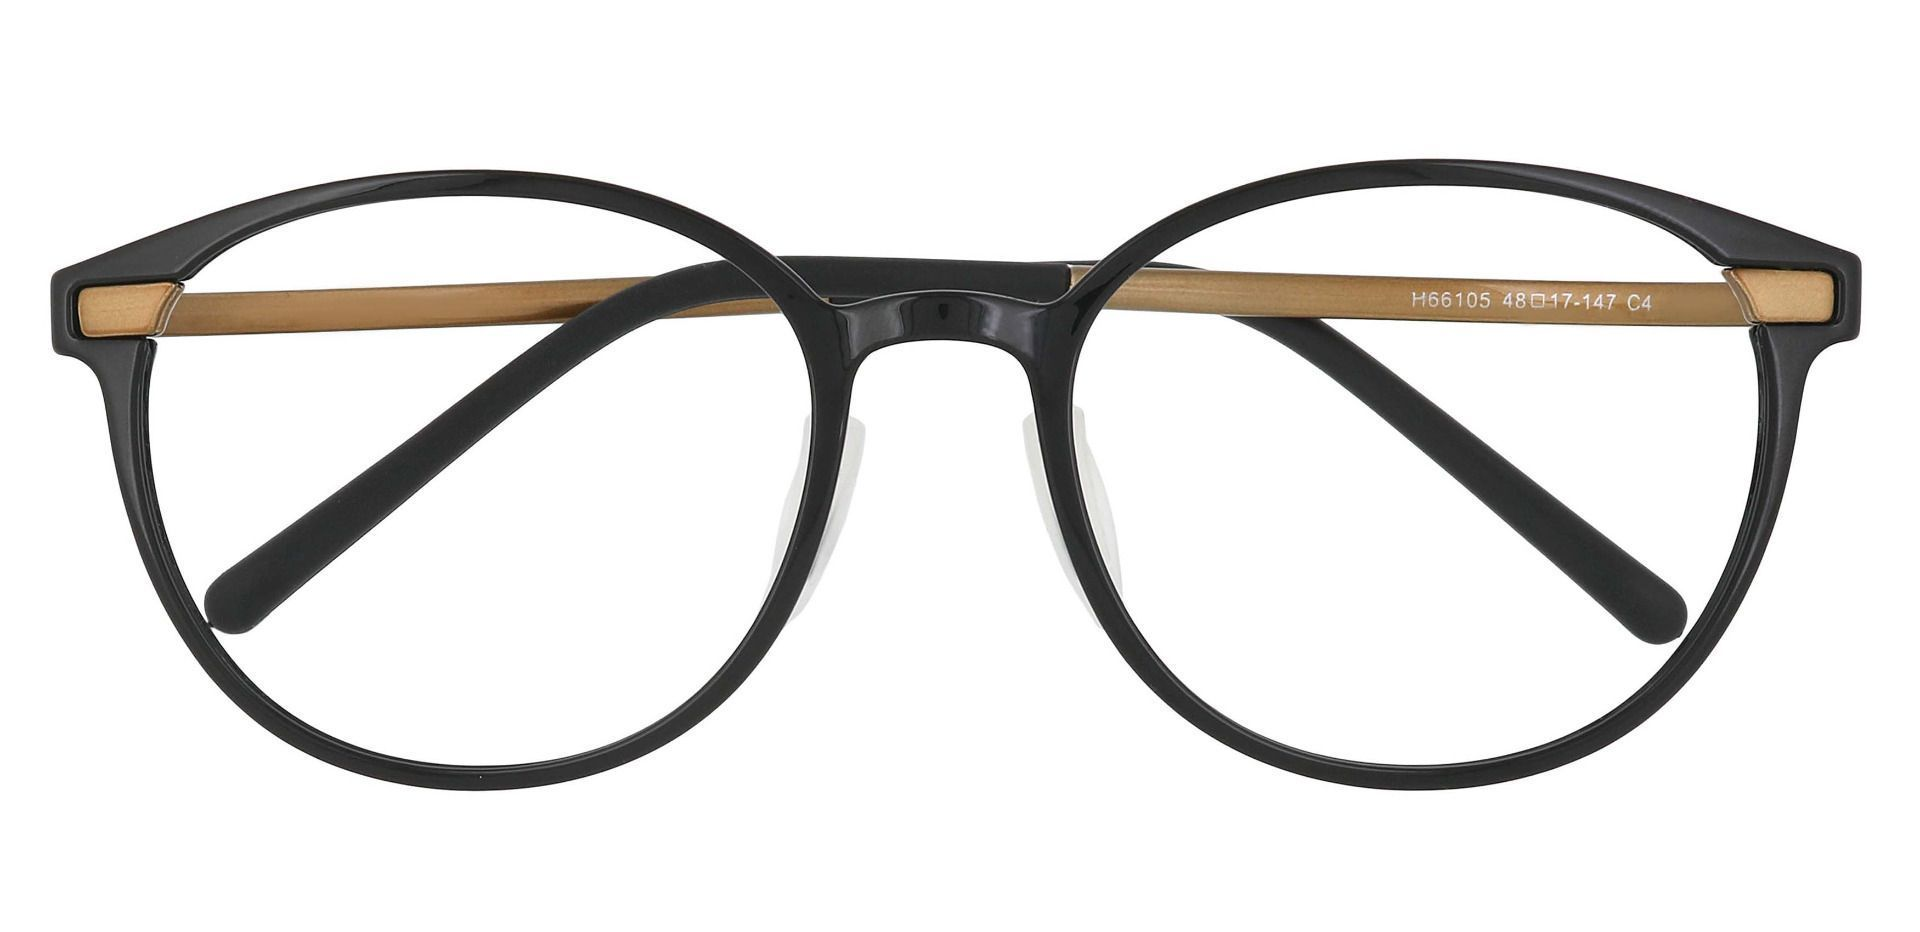 Anniston Round Prescription Glasses - Gold